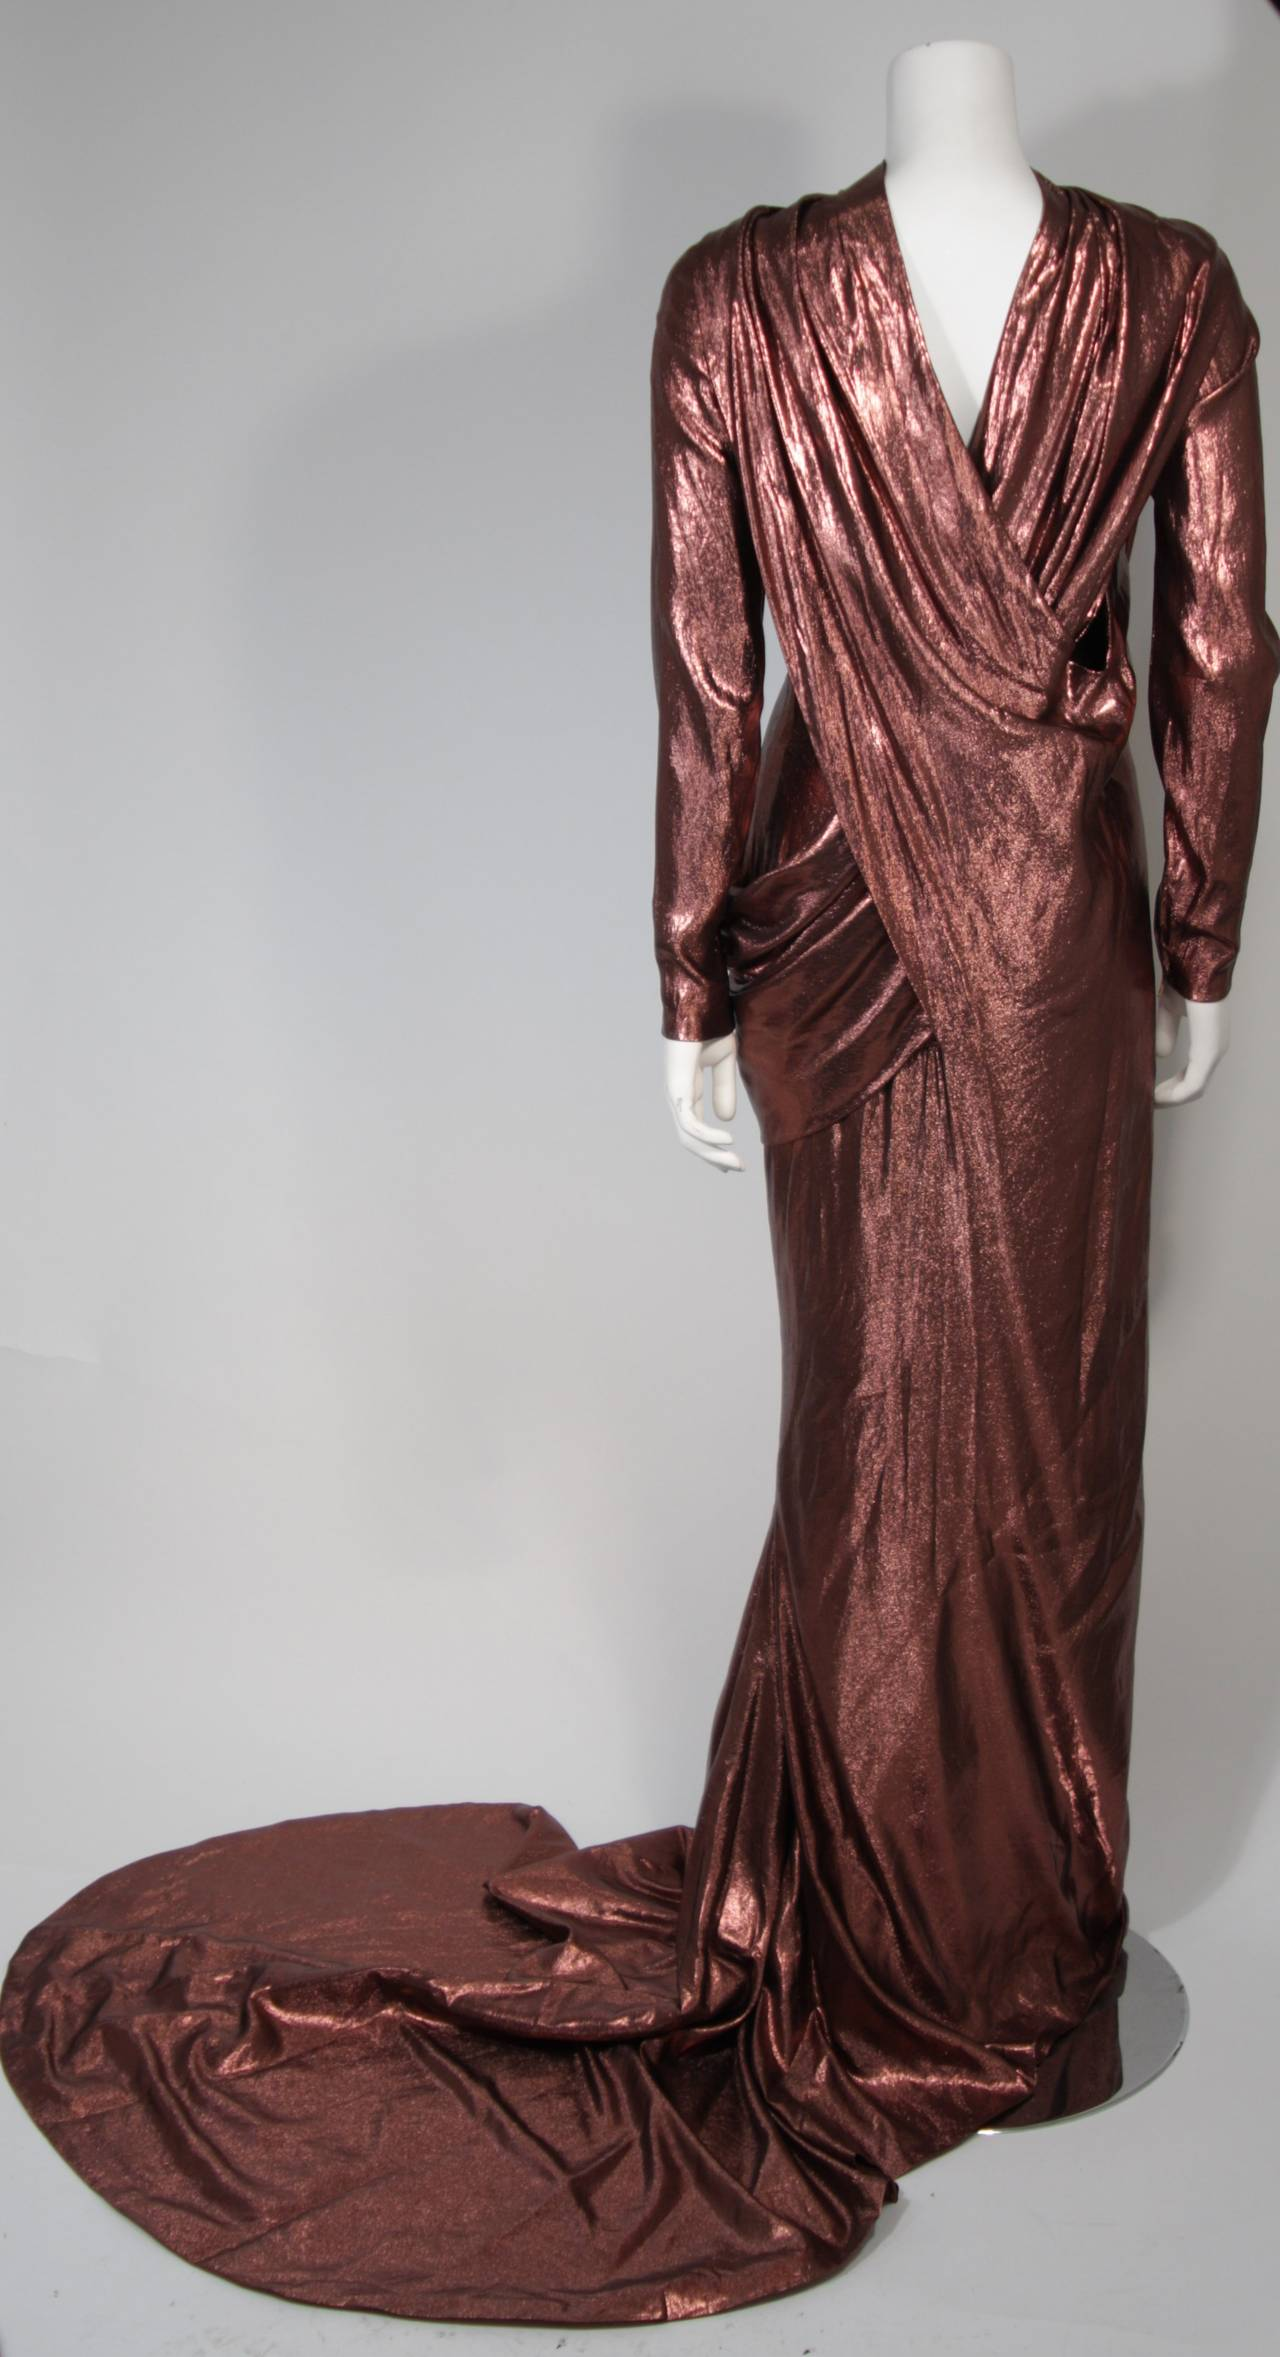 Pierre Balmain Runway Couture Copper Metallic Silk Gown Size Small Circa 1980's 6